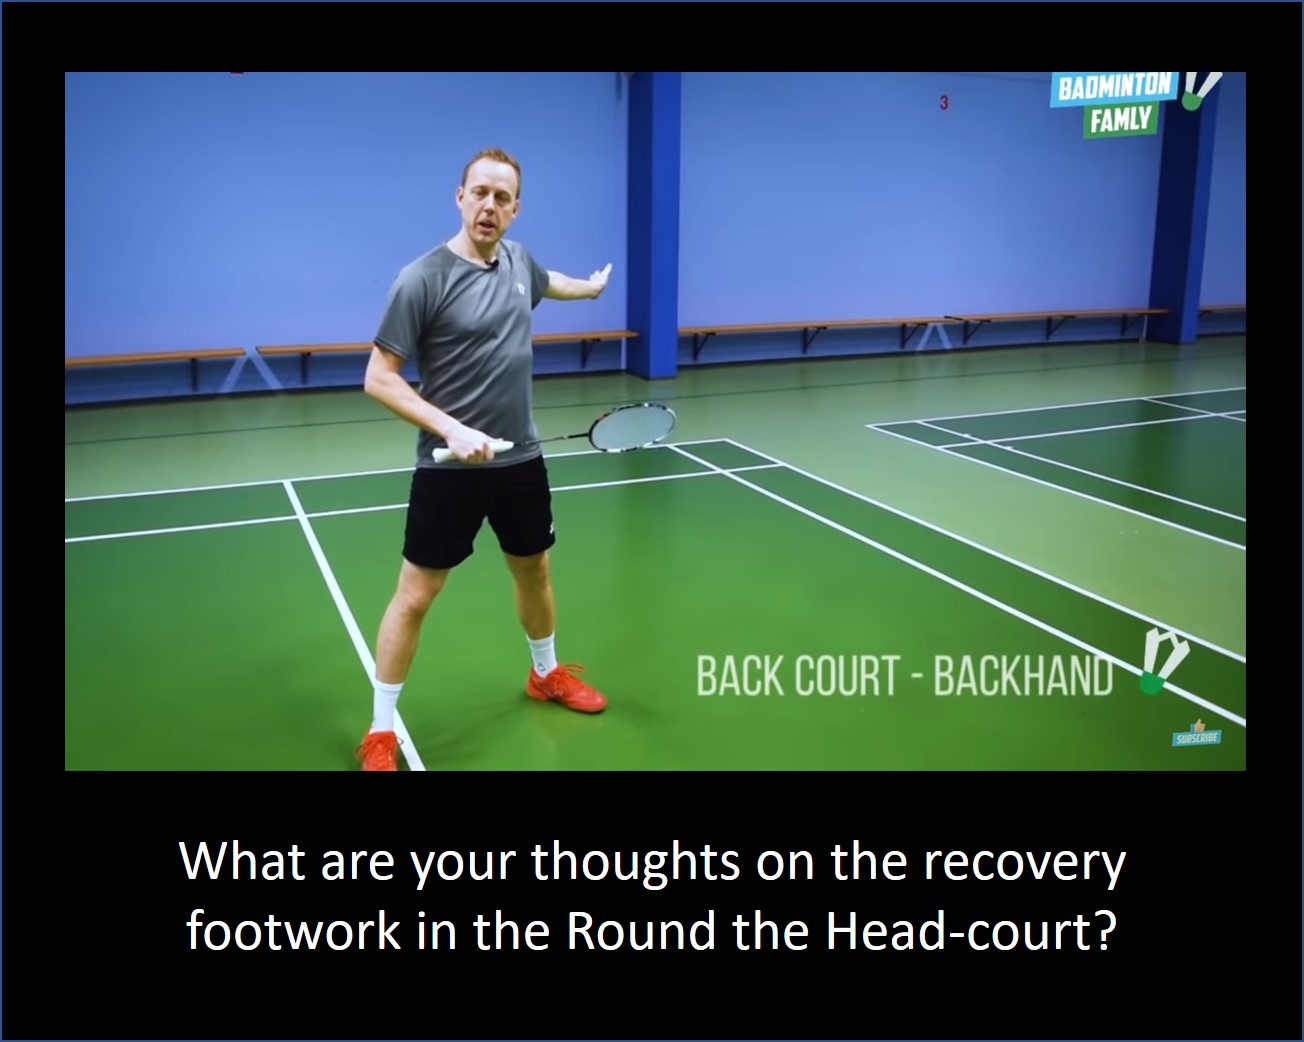 The Badminton Family recovery from RTH